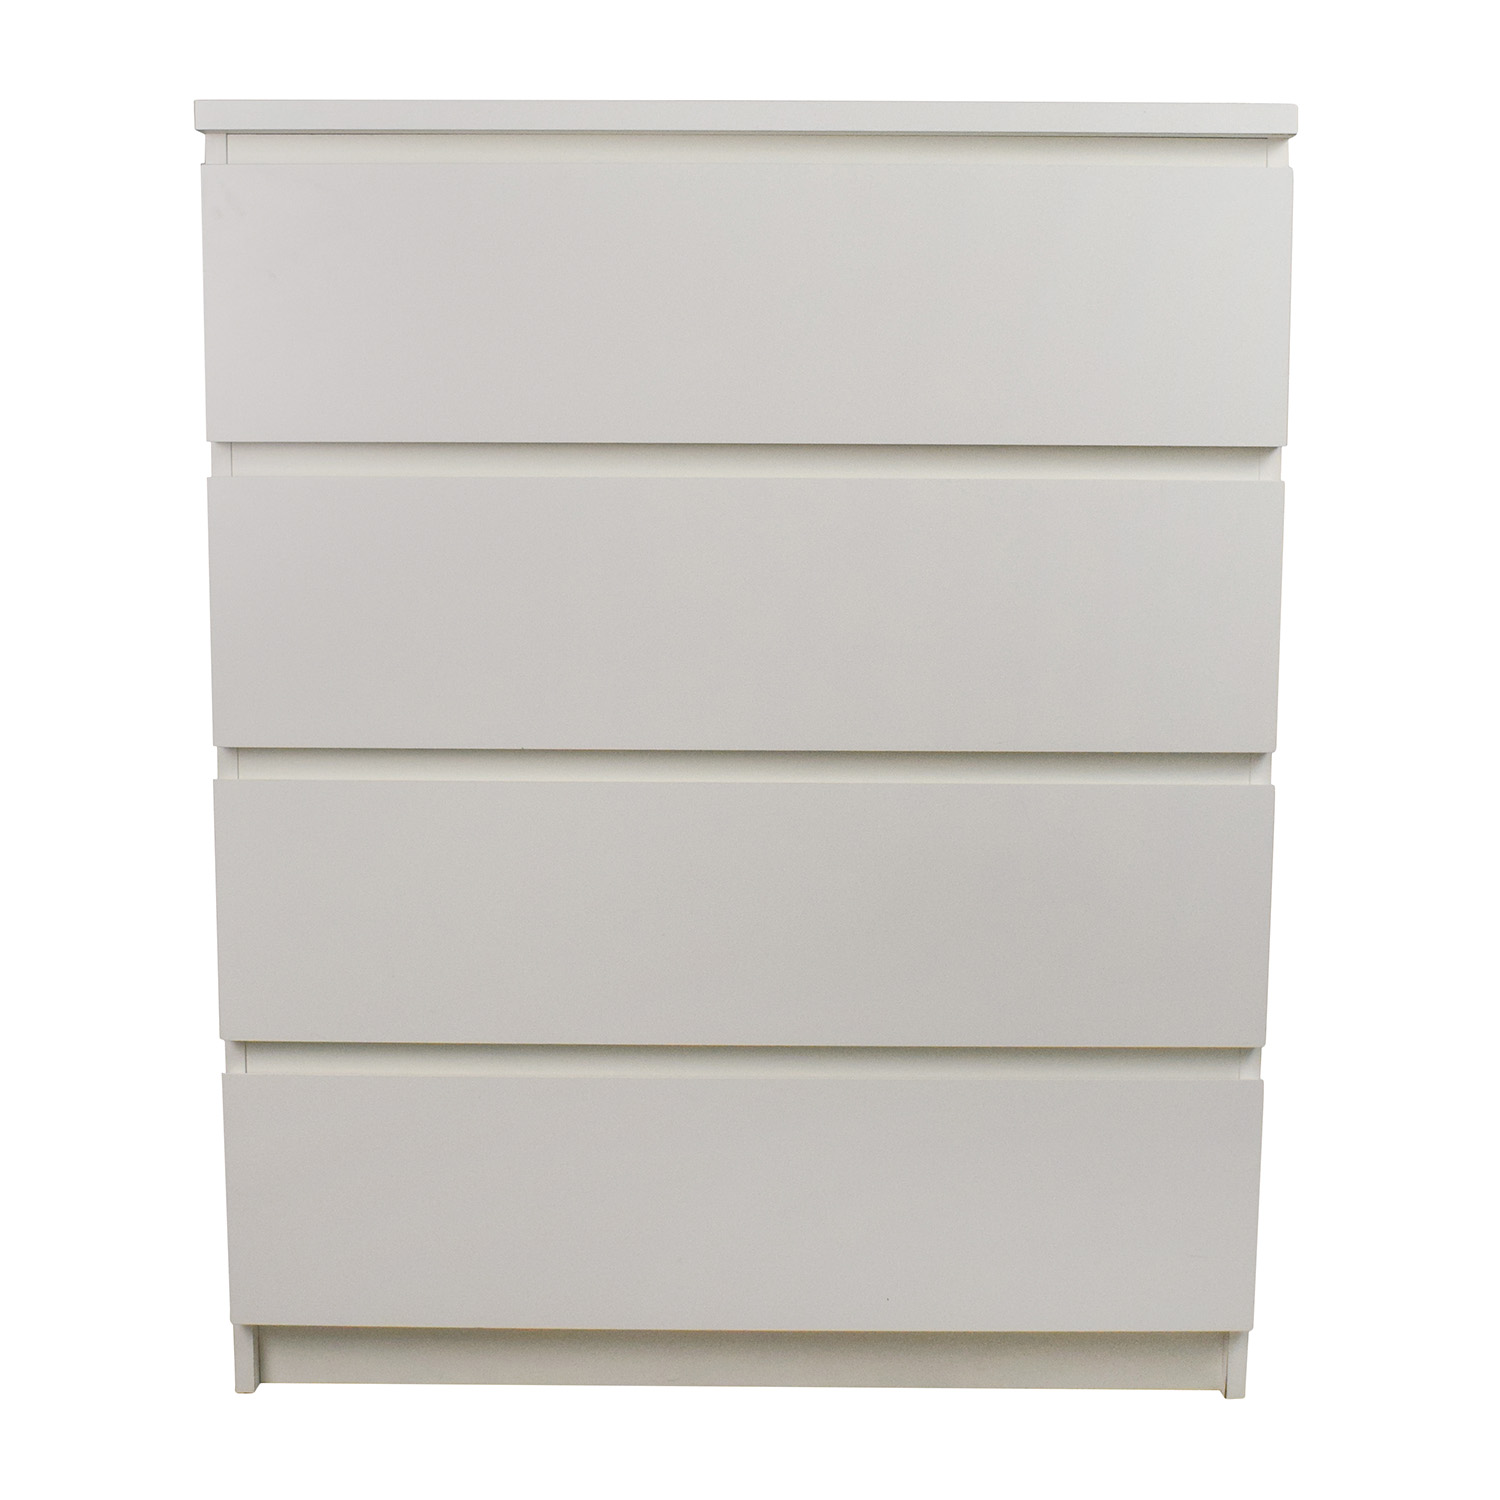 White 4-Drawer Dresser dimensions